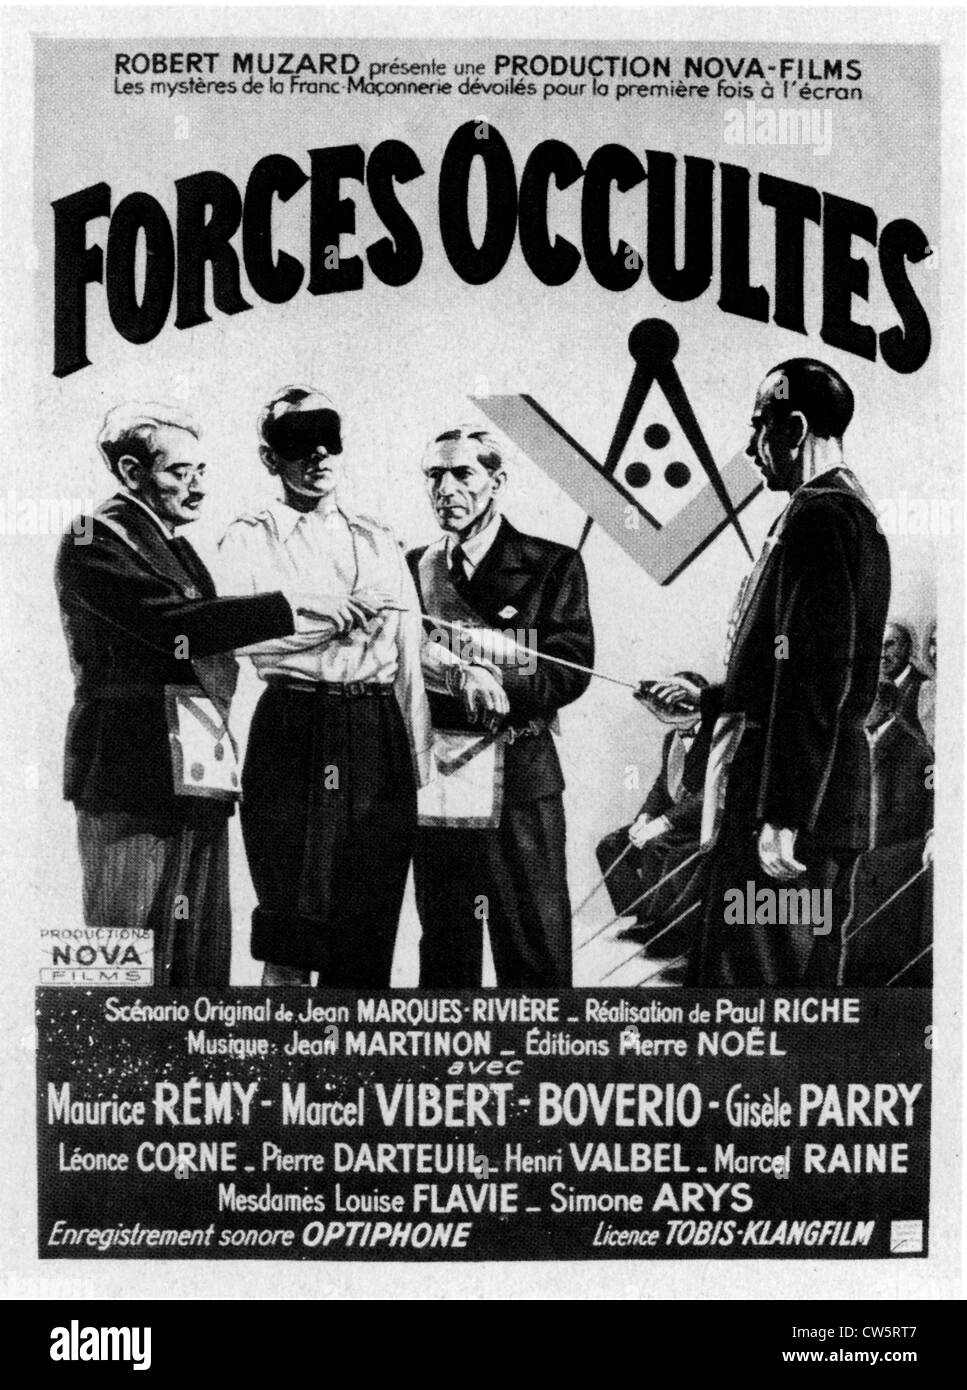 Poster of the movie 'Forces occultes' - Stock Image